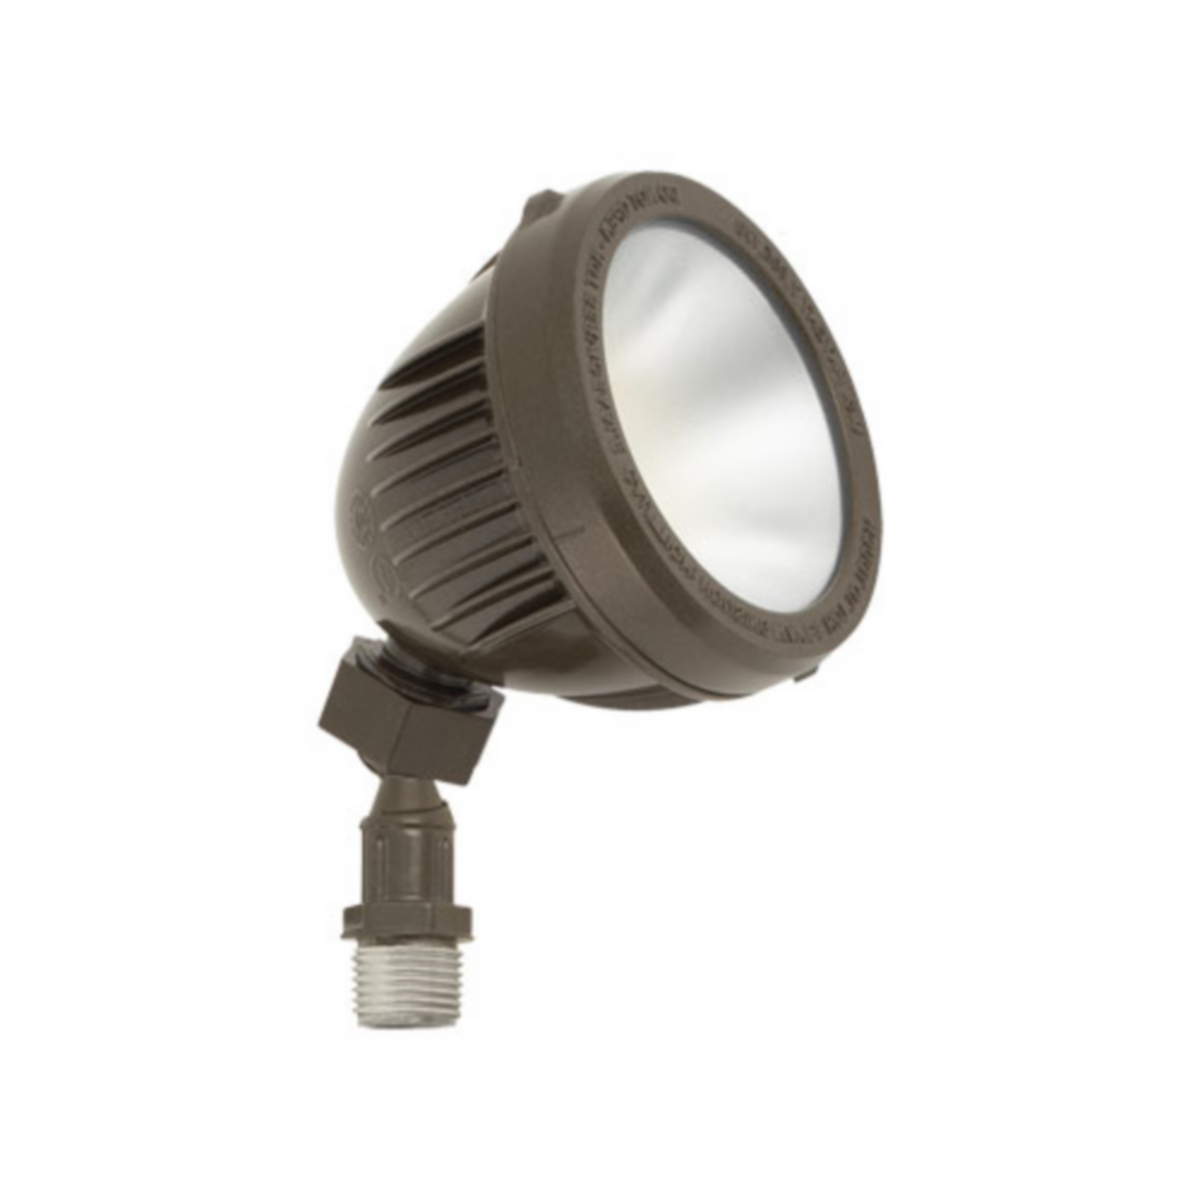 Colt mini flood lighting commercial outdoor lighting lighting colt mini by hubbell outdoor lighting aloadofball Image collections